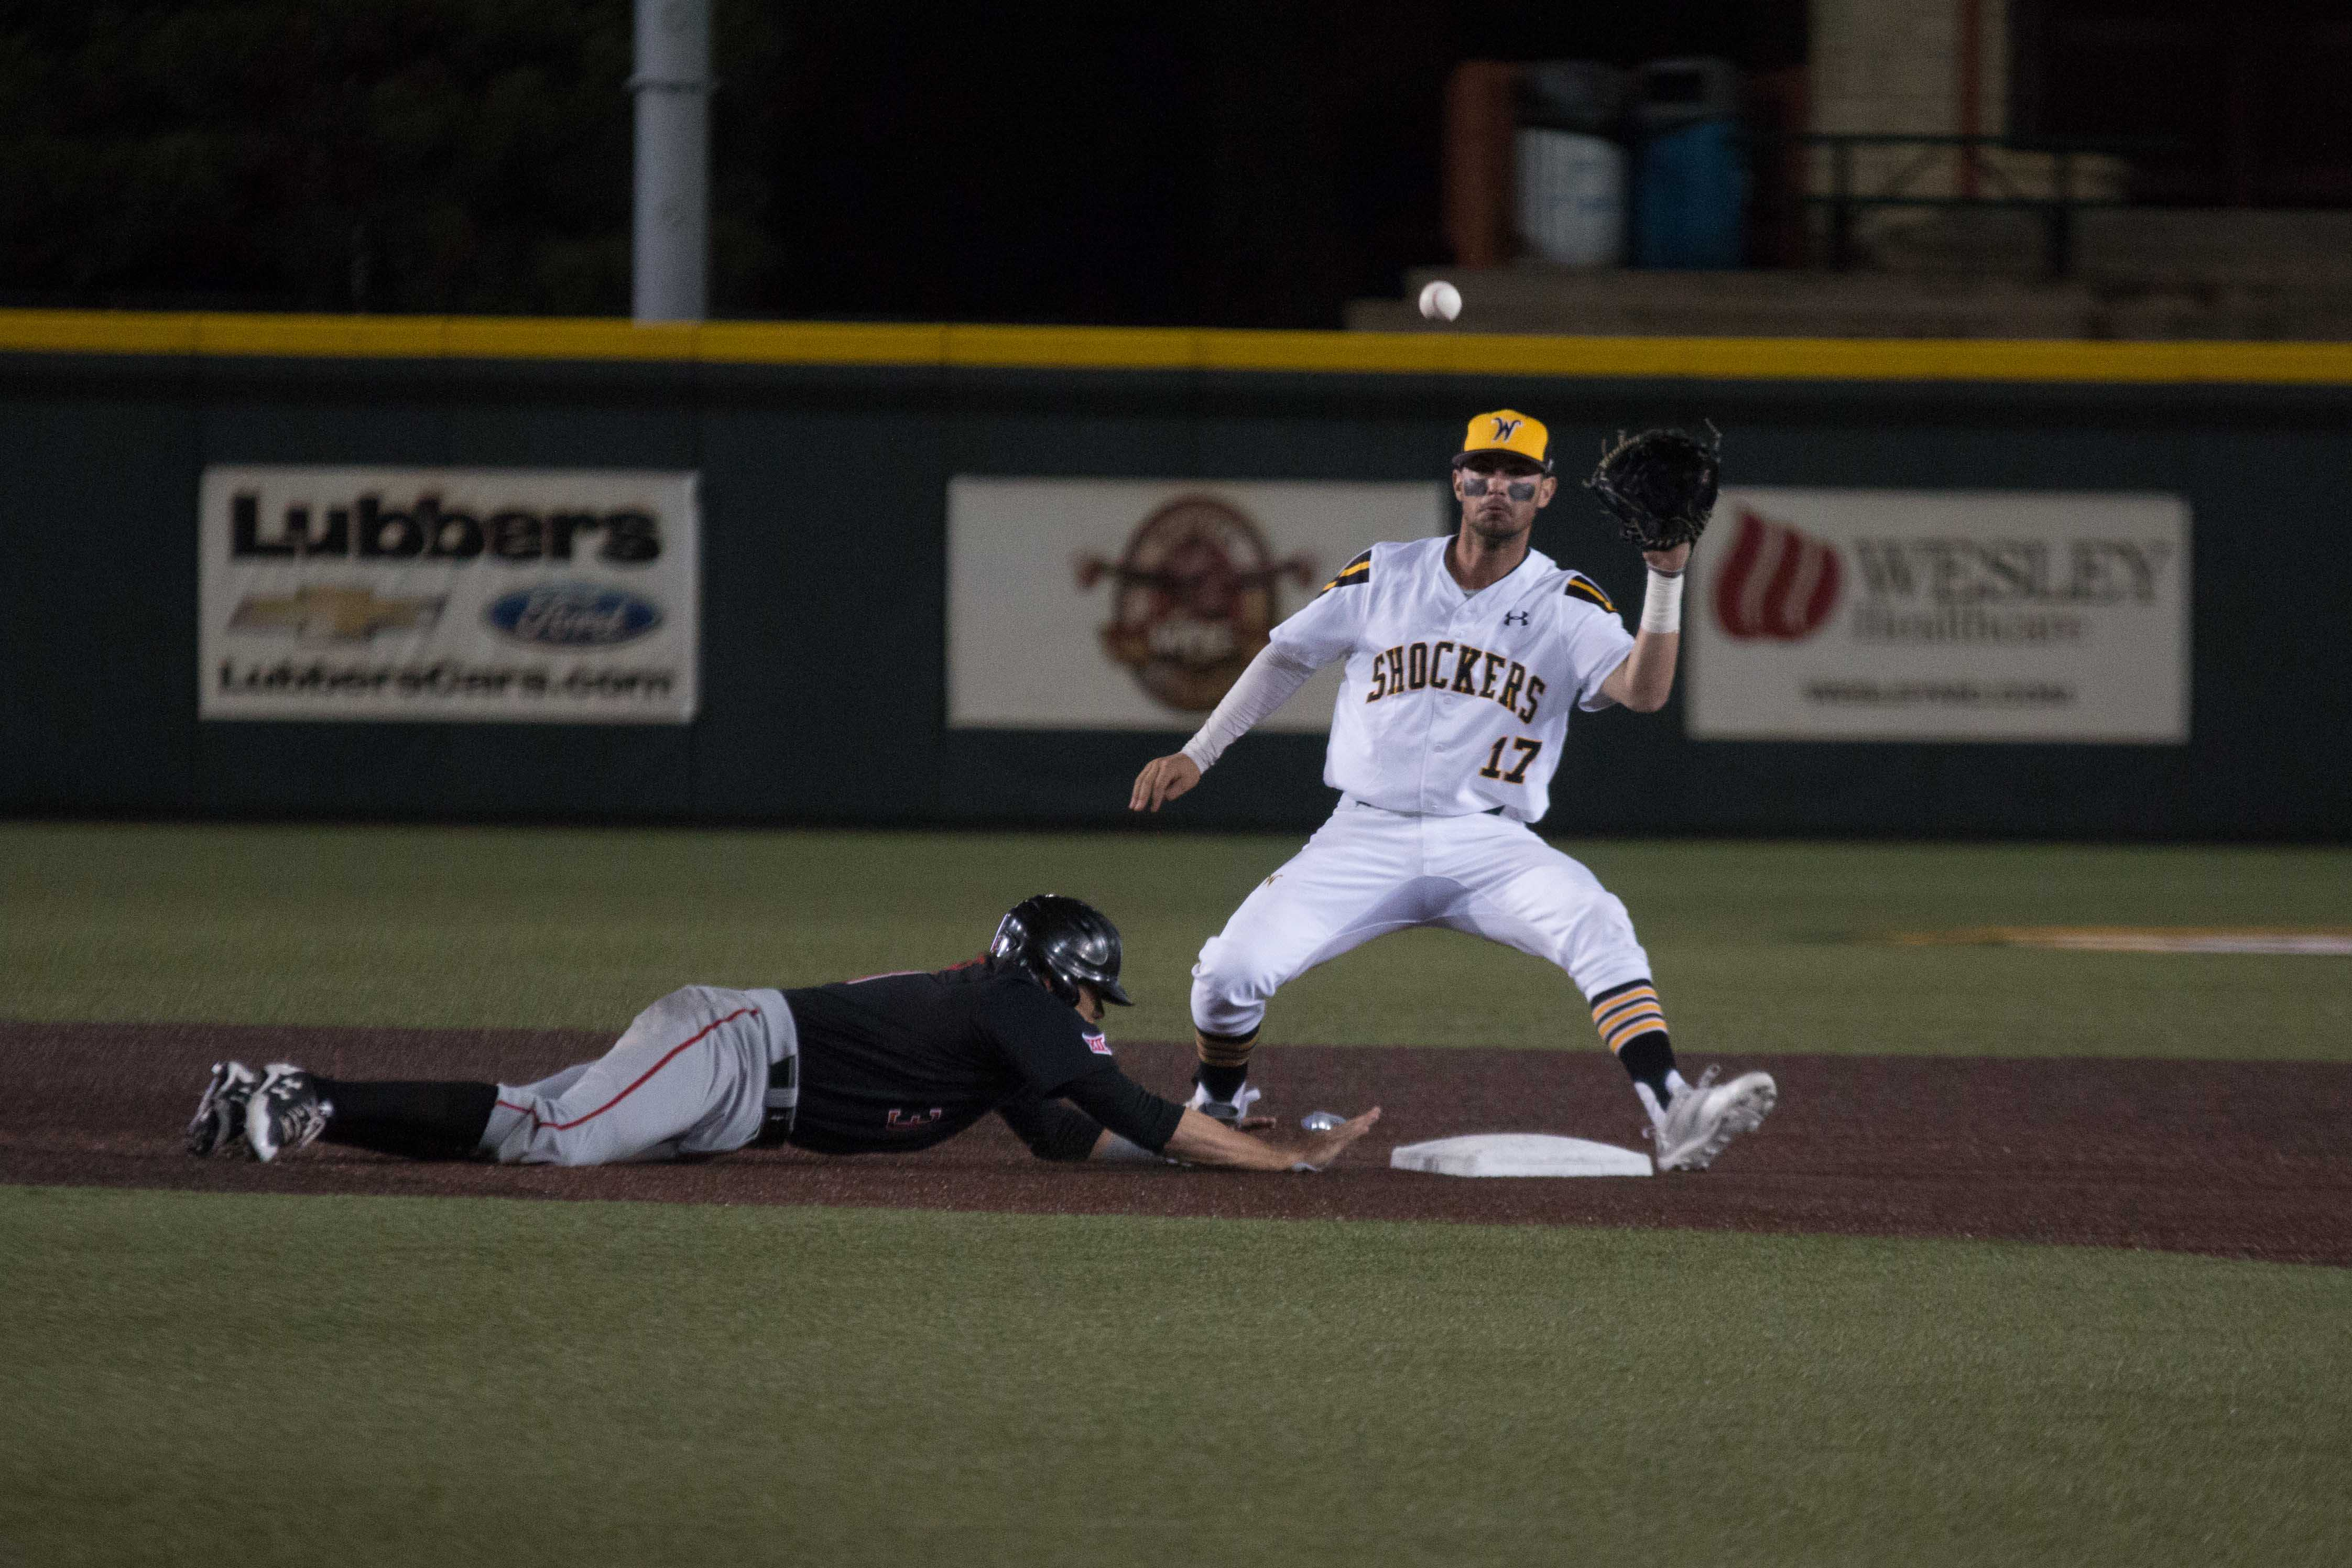 Junior Trey Vickers tags the base to get a Texas Tech player out.